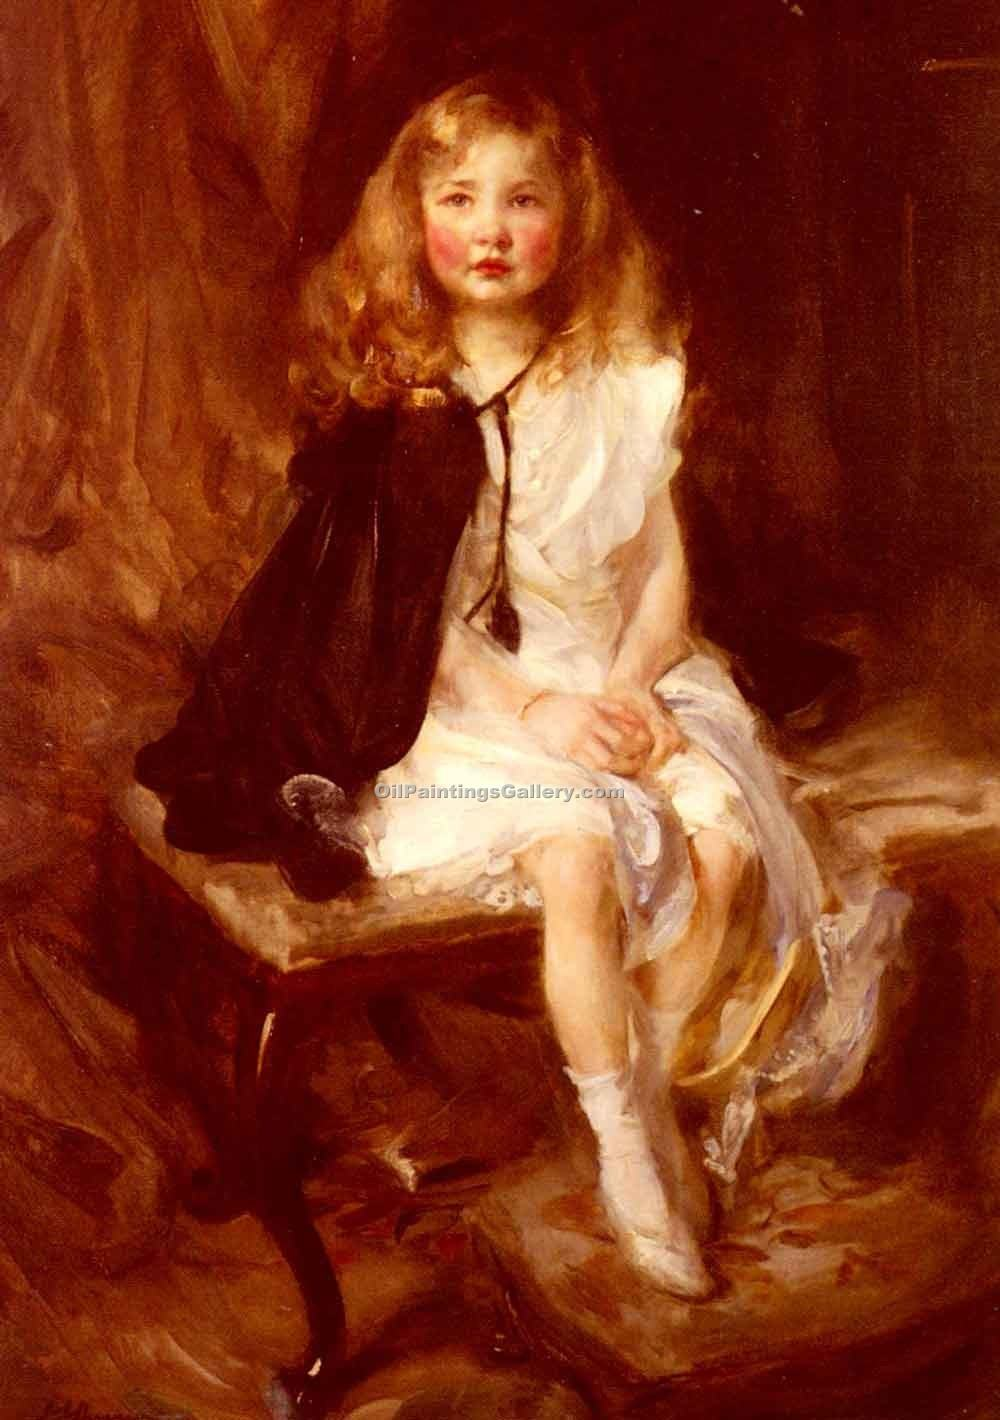 Bridget, Daughter of Harold Nickols by Shannon James Jebusa | Family Portraits - Oil Paintings Gallery